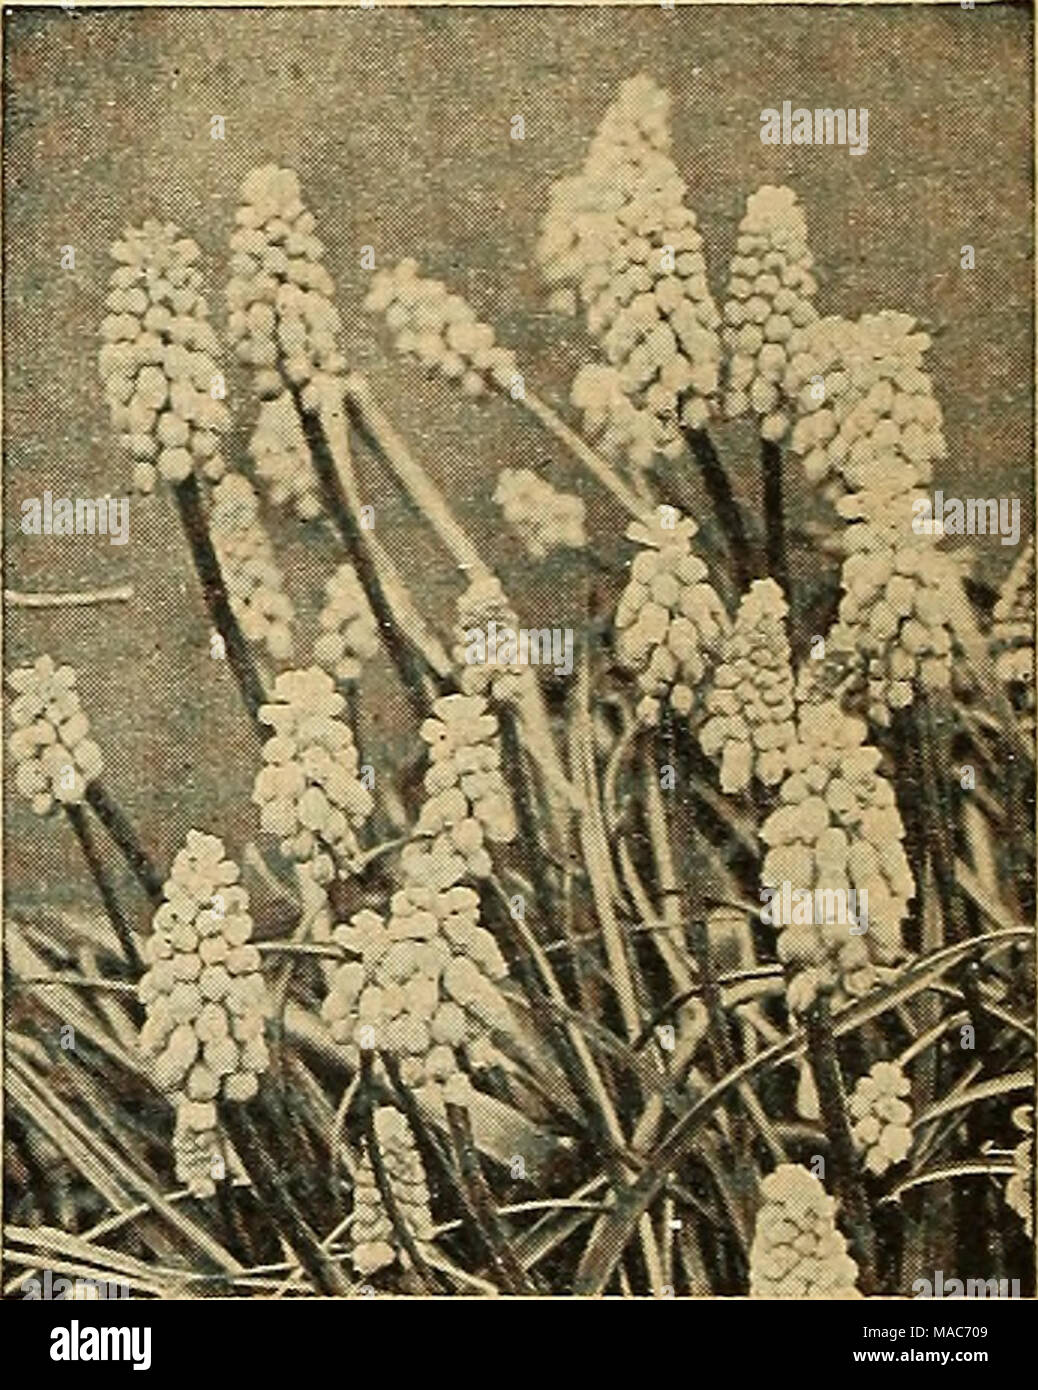 Dreers planting guide autumn 1944 muscari armeniacumgrape dreers planting guide autumn 1944 muscari armeniacumgrape hyacinth muscari grape hyacinth a o one of the prettiest of early spring flowering bulbs mightylinksfo